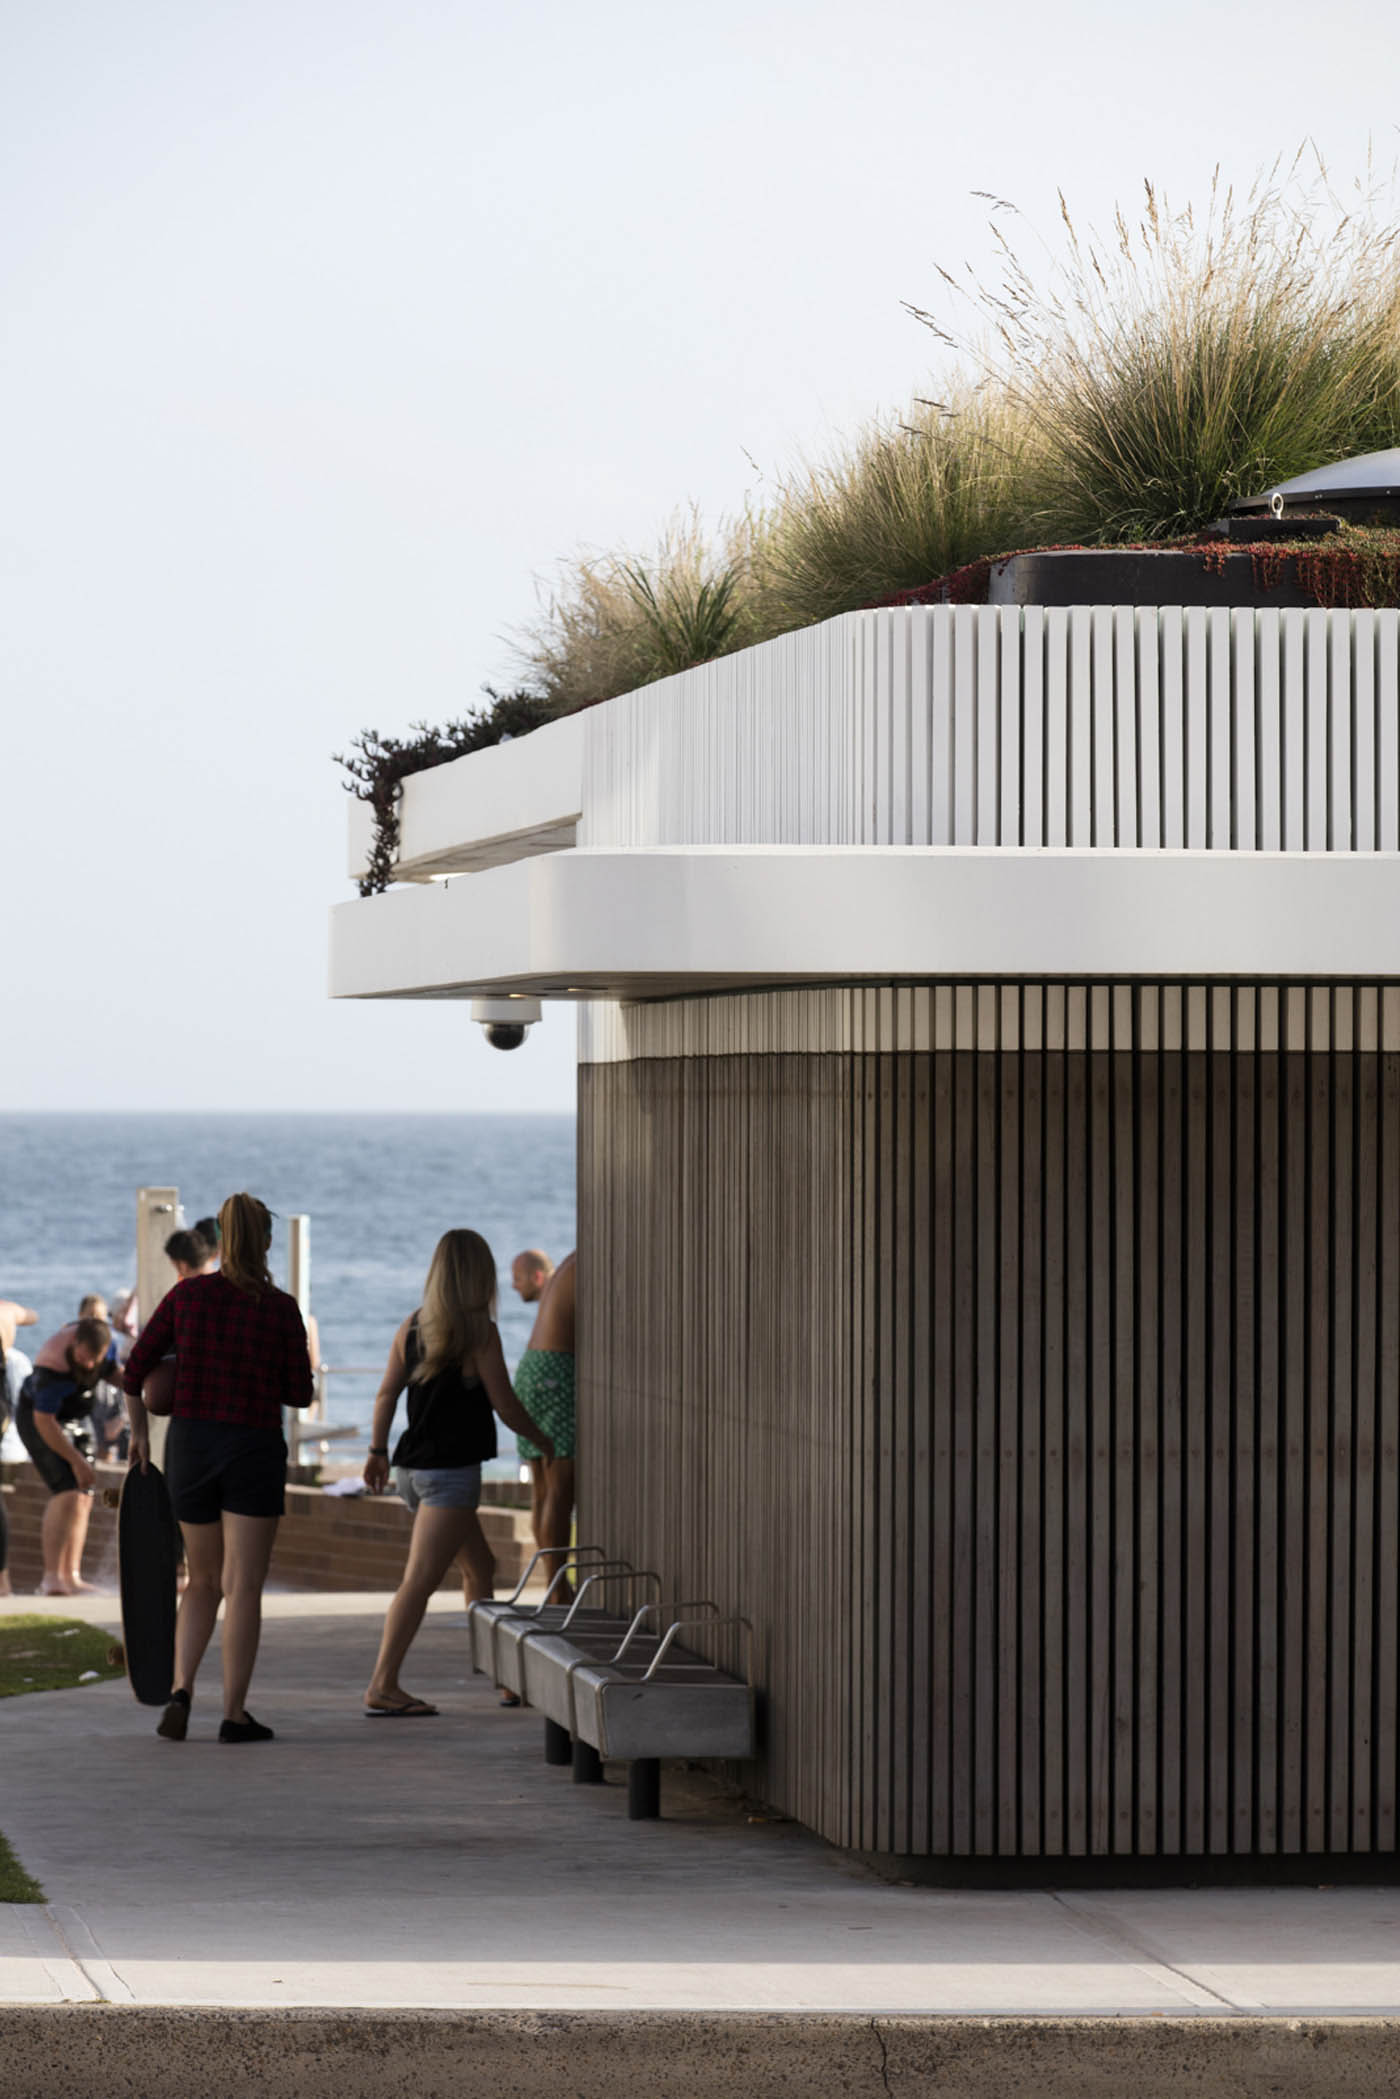 North Bondi Amenities, a public project by award winning Sam Crawford Architects. View of the seats incorporated into the facade.